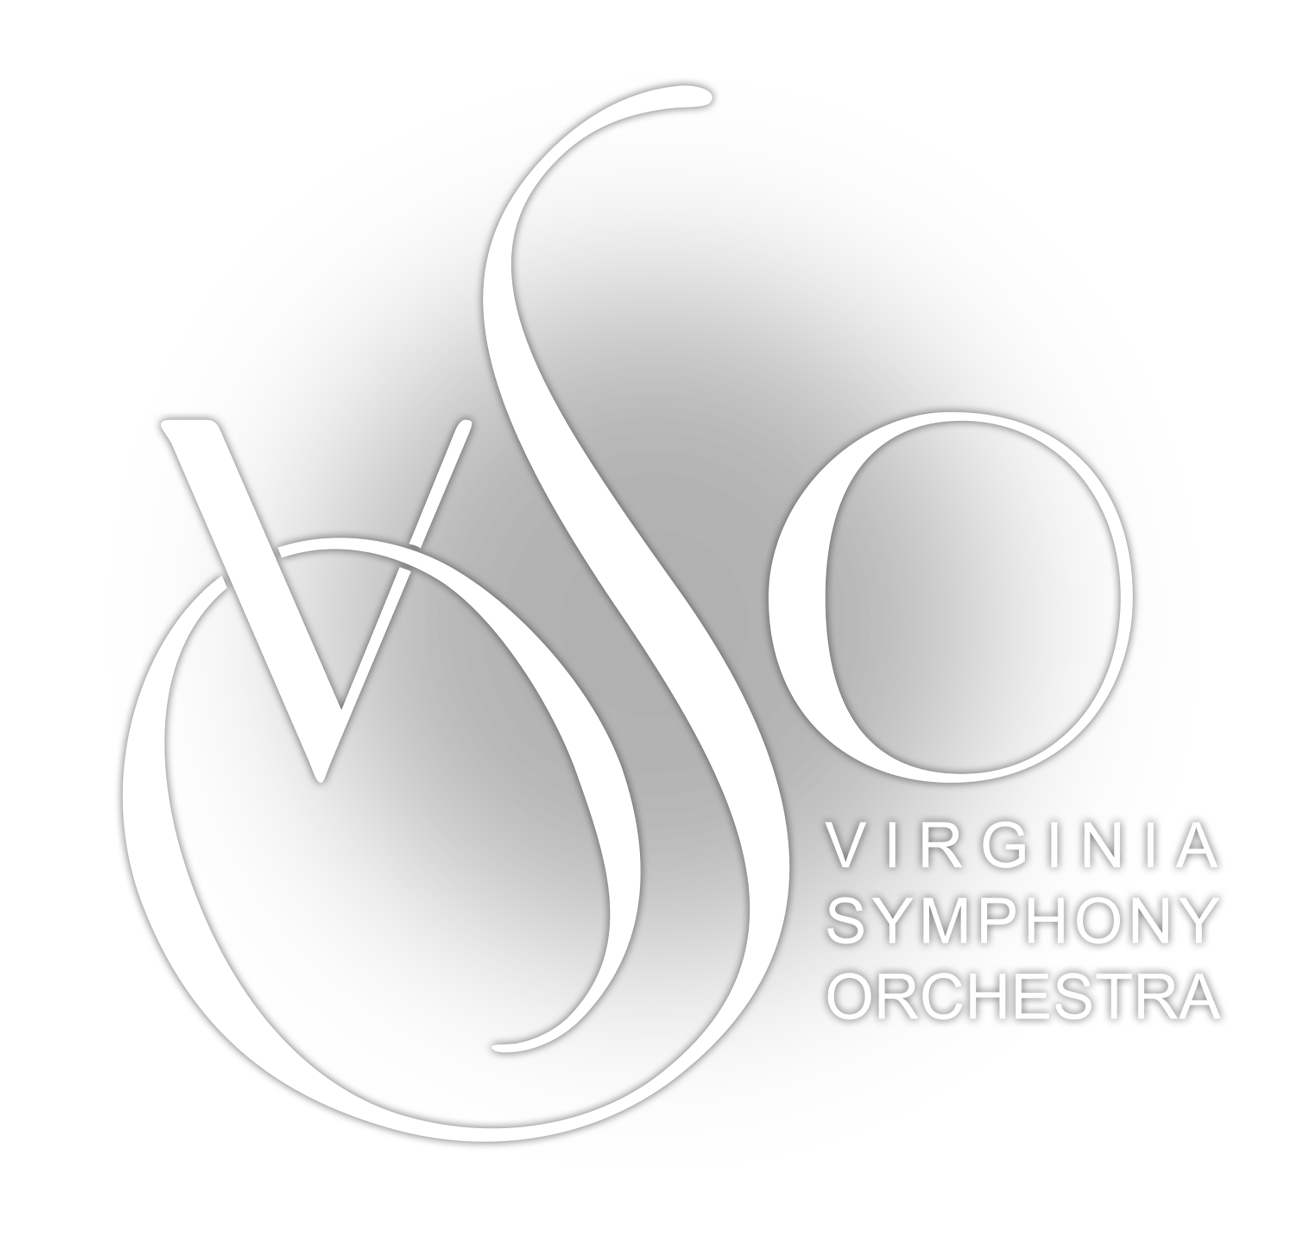 Virginia Symphony Orchestra